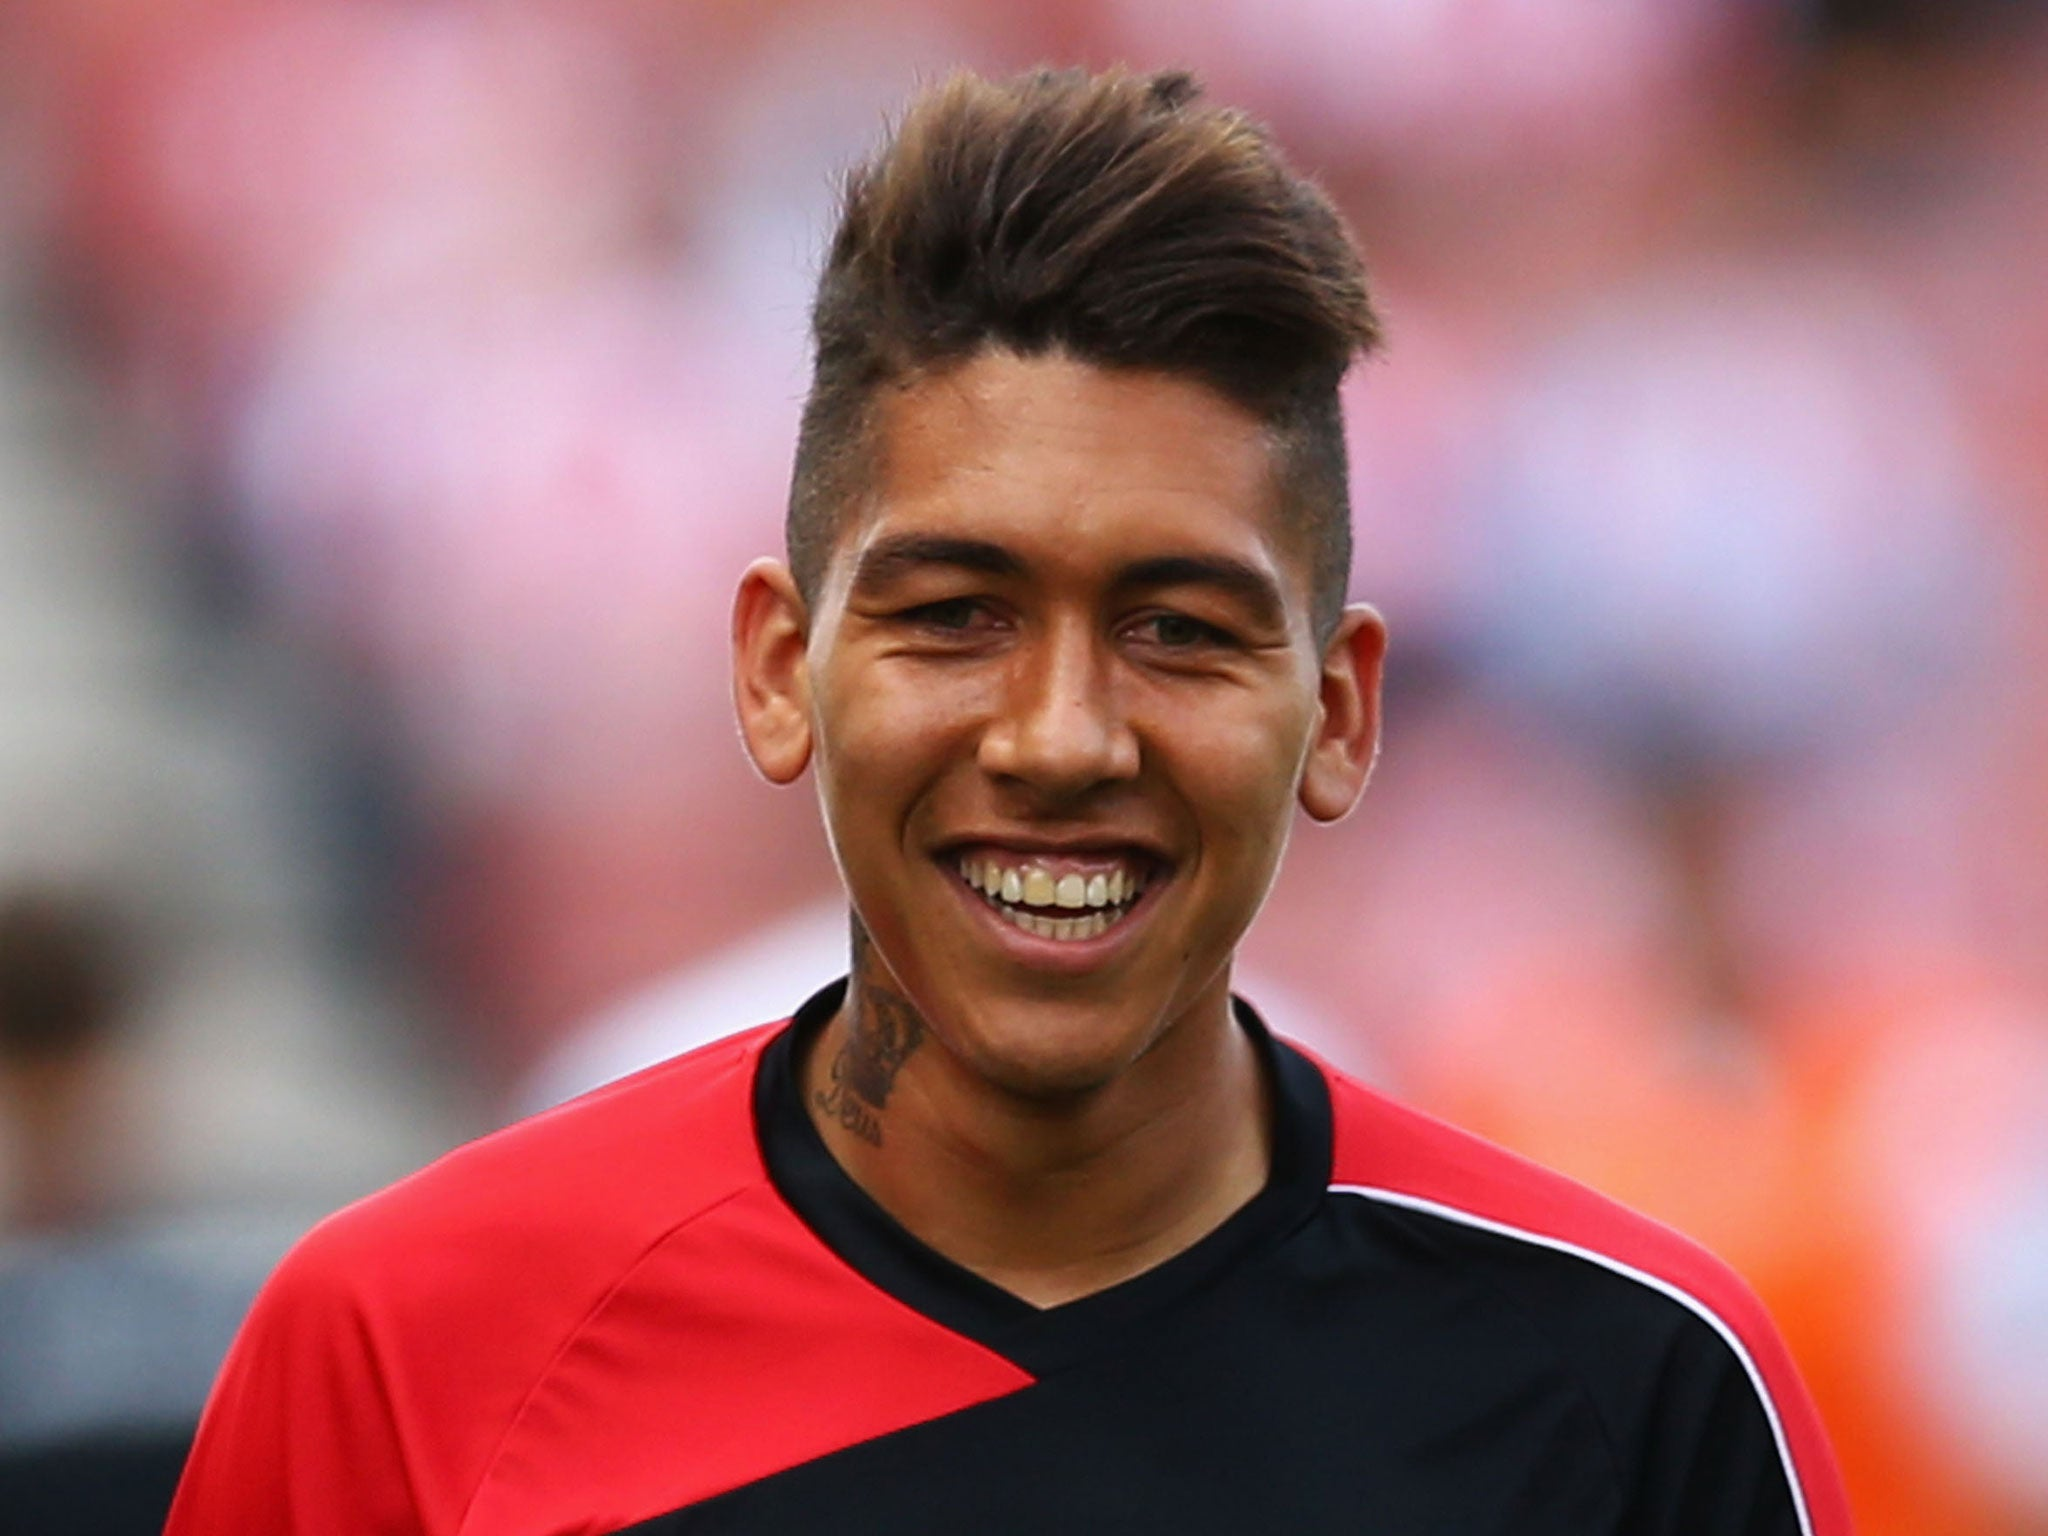 Roberto Firmino scores hat-trick for Liverpool in friendly ...